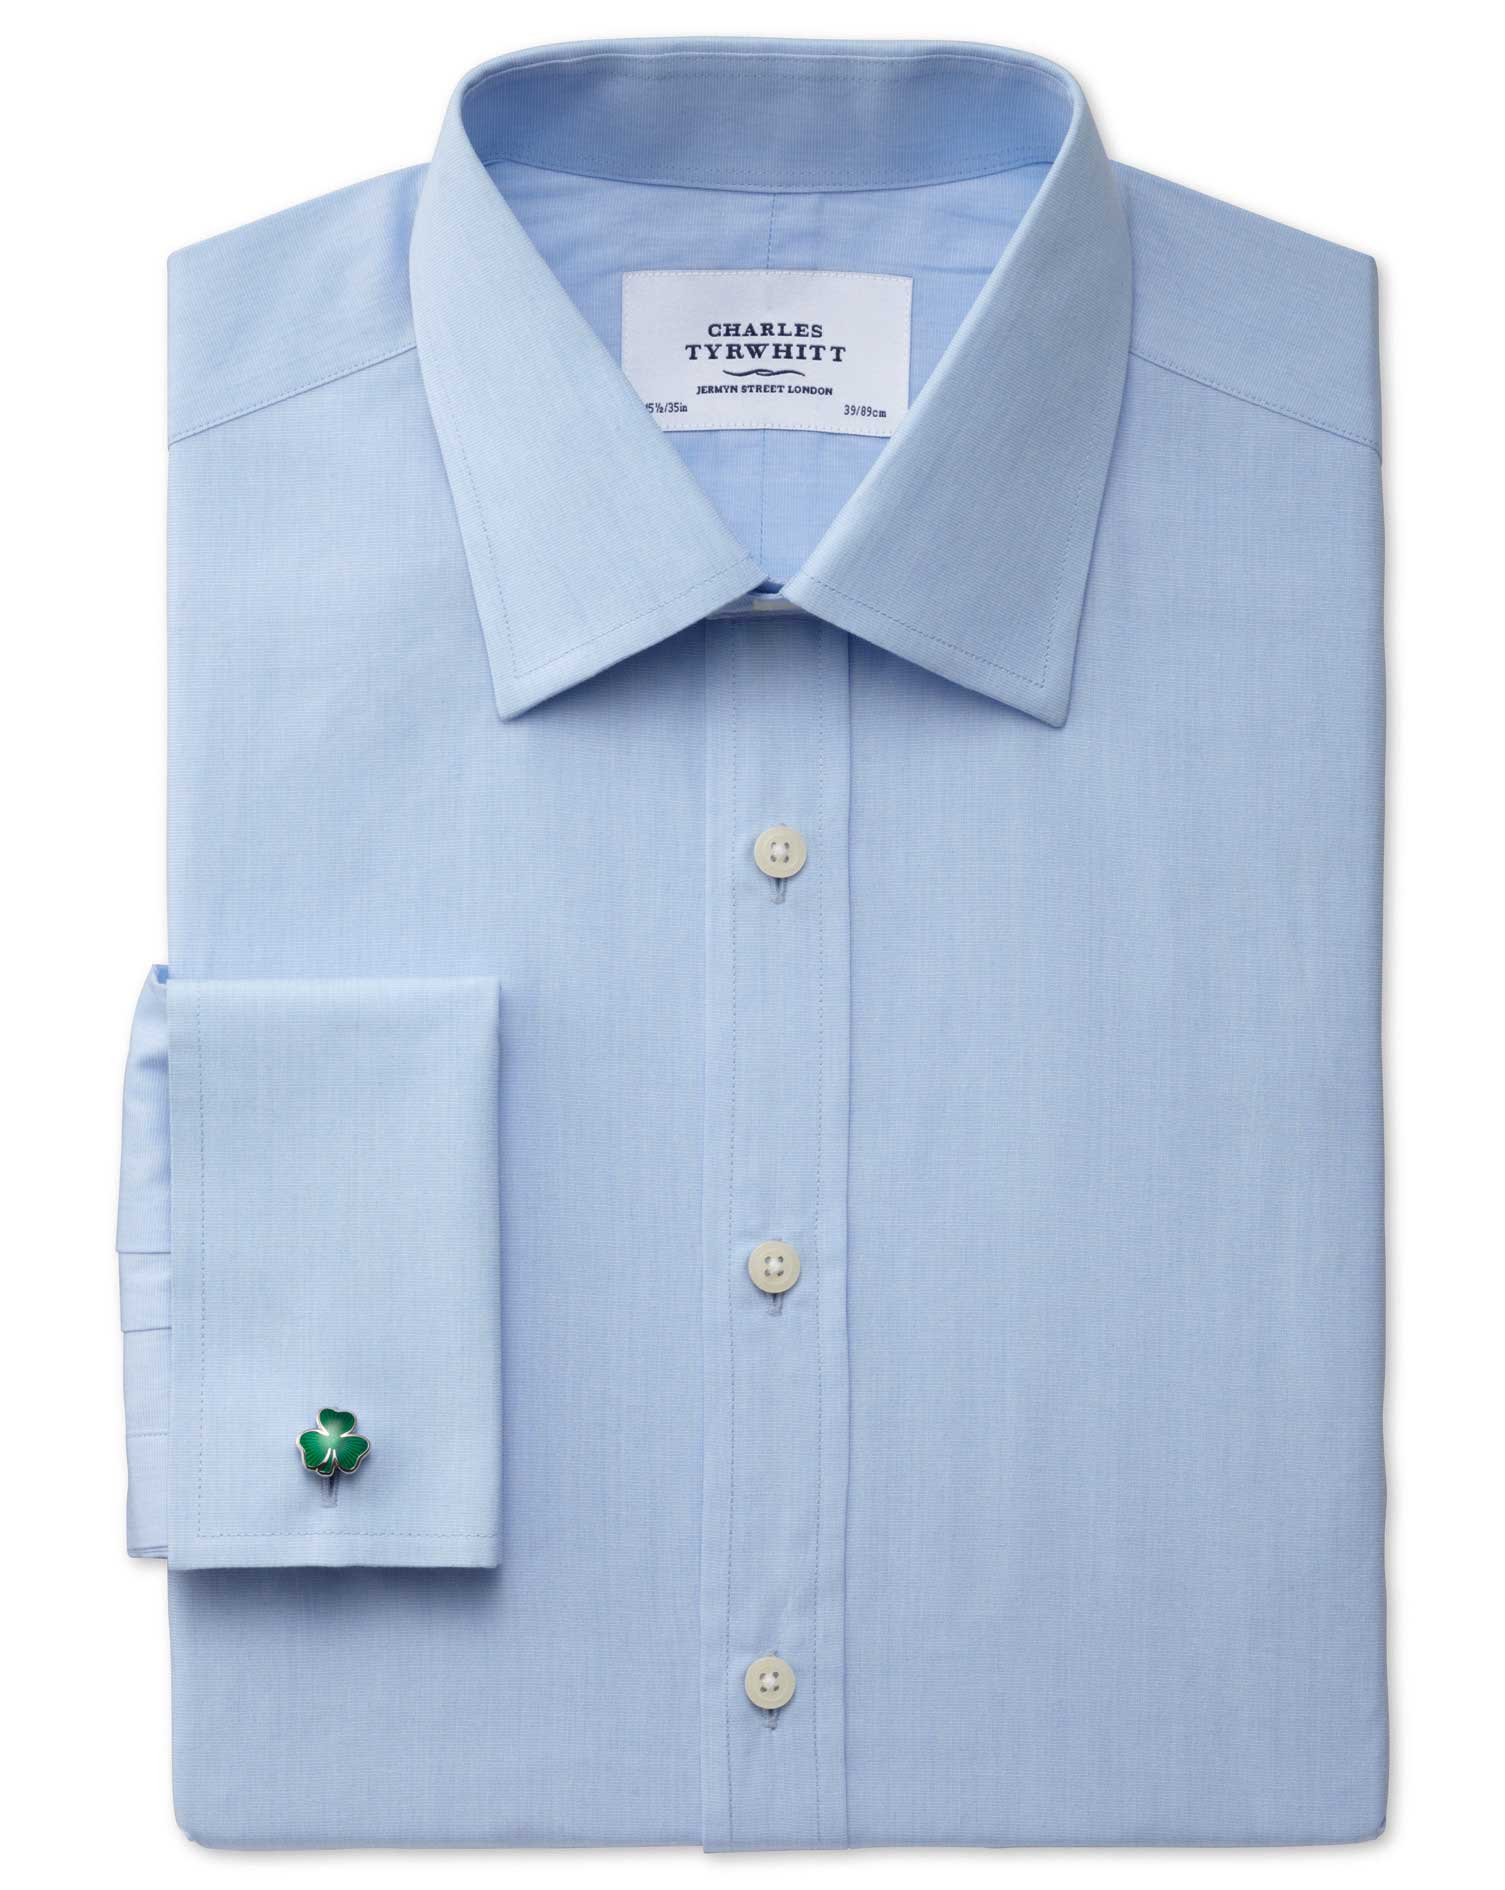 Classic Fit End-On-End Sky Blue Cotton Formal Shirt Single Cuff Size 16/34 by Charles Tyrwhitt